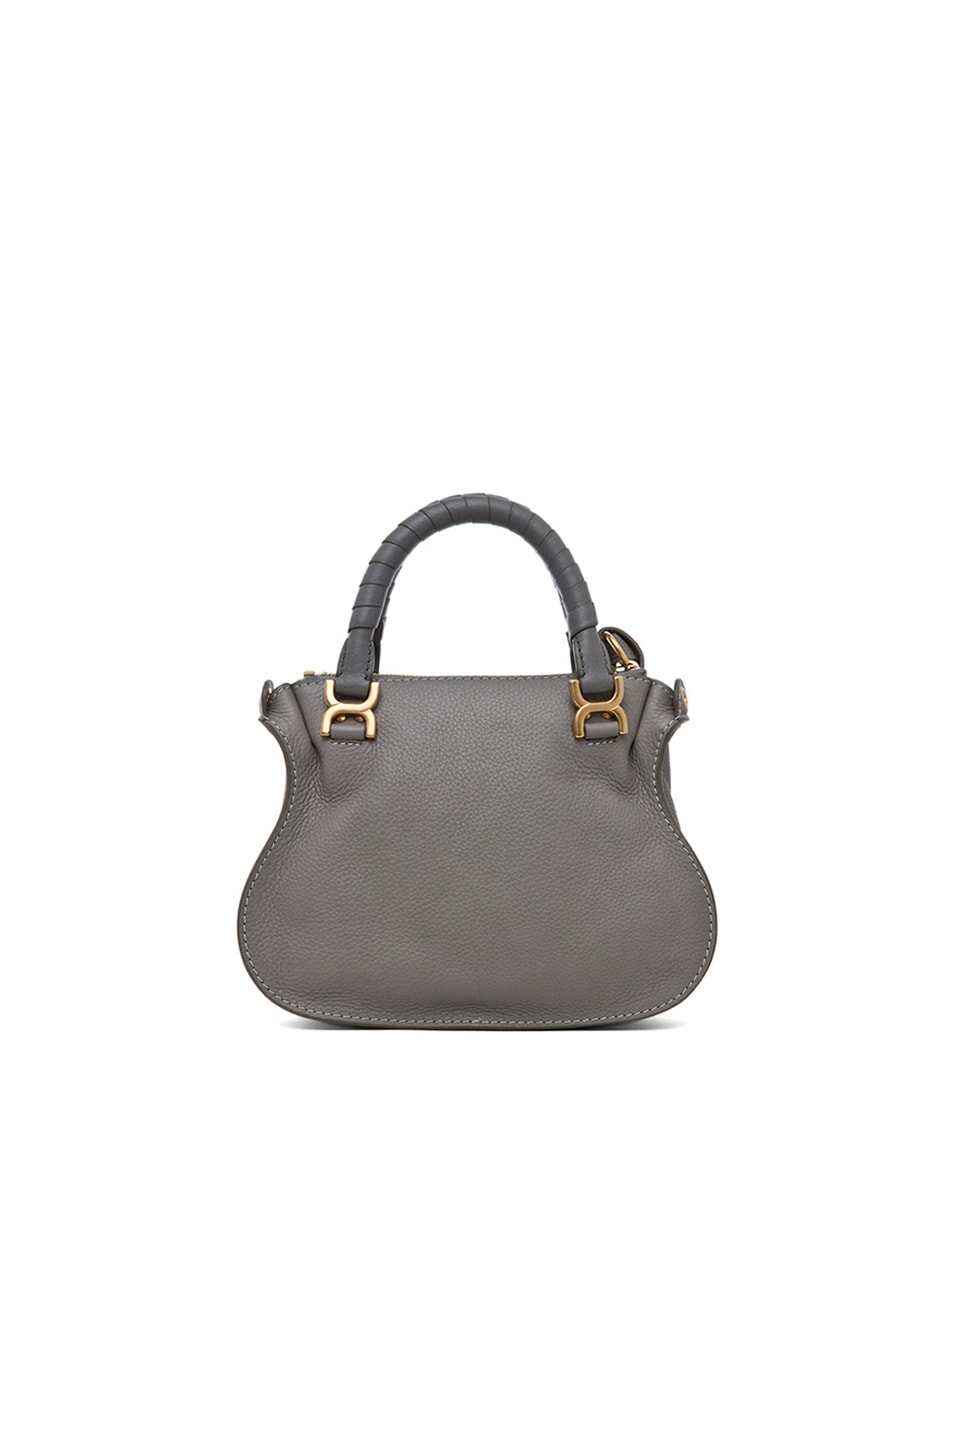 Image 2 of Chloe Mini Marcie Bag in Cashmere Grey